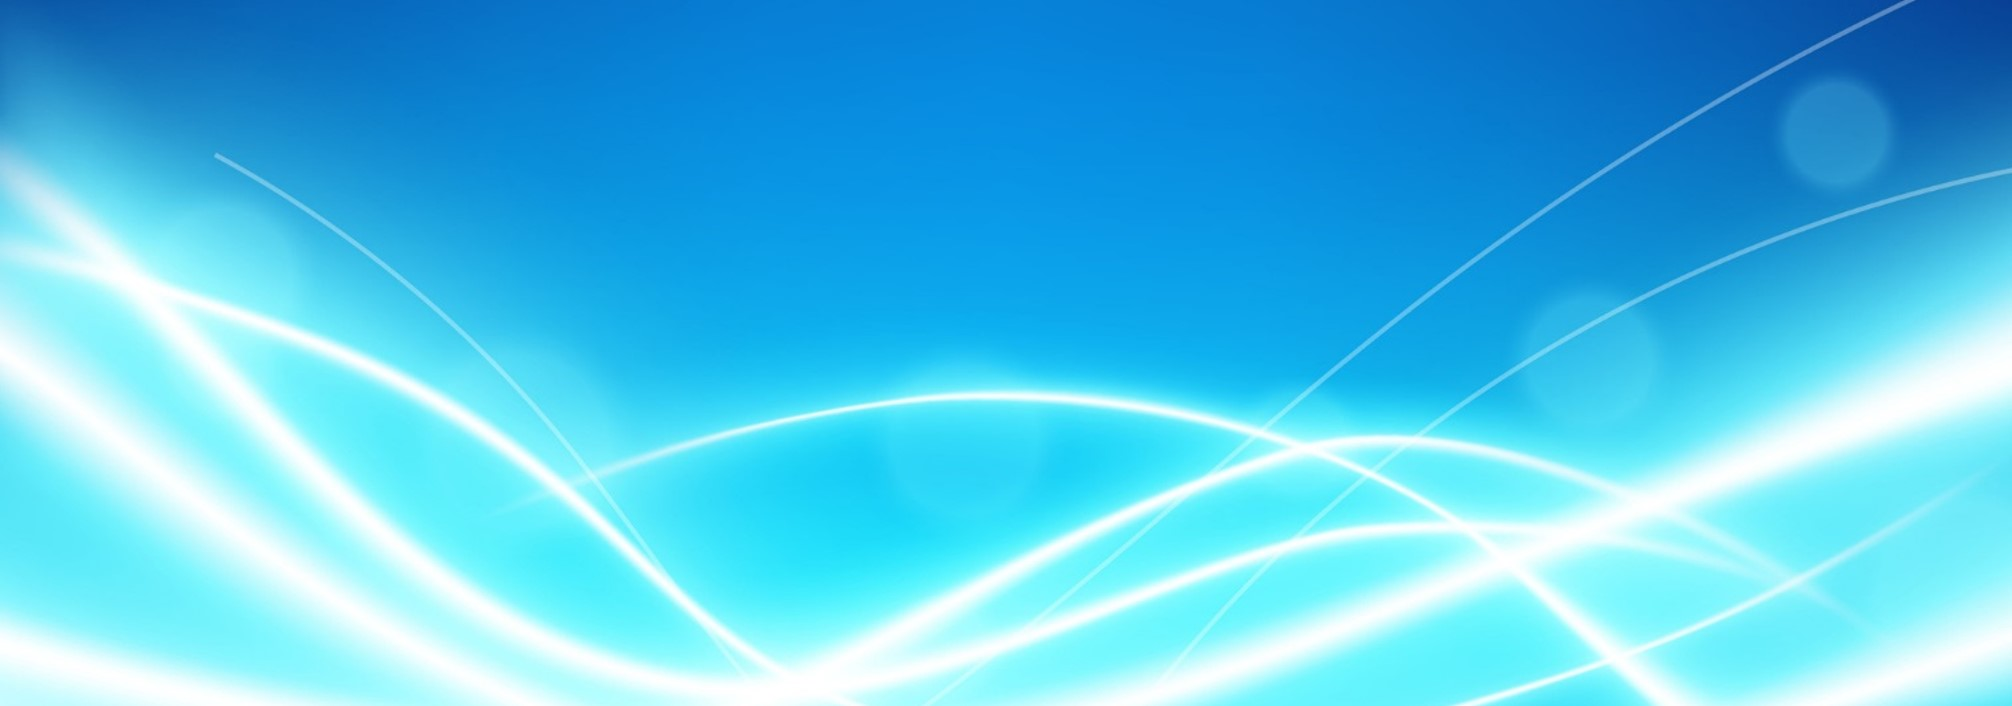 Abstract waves on blue background